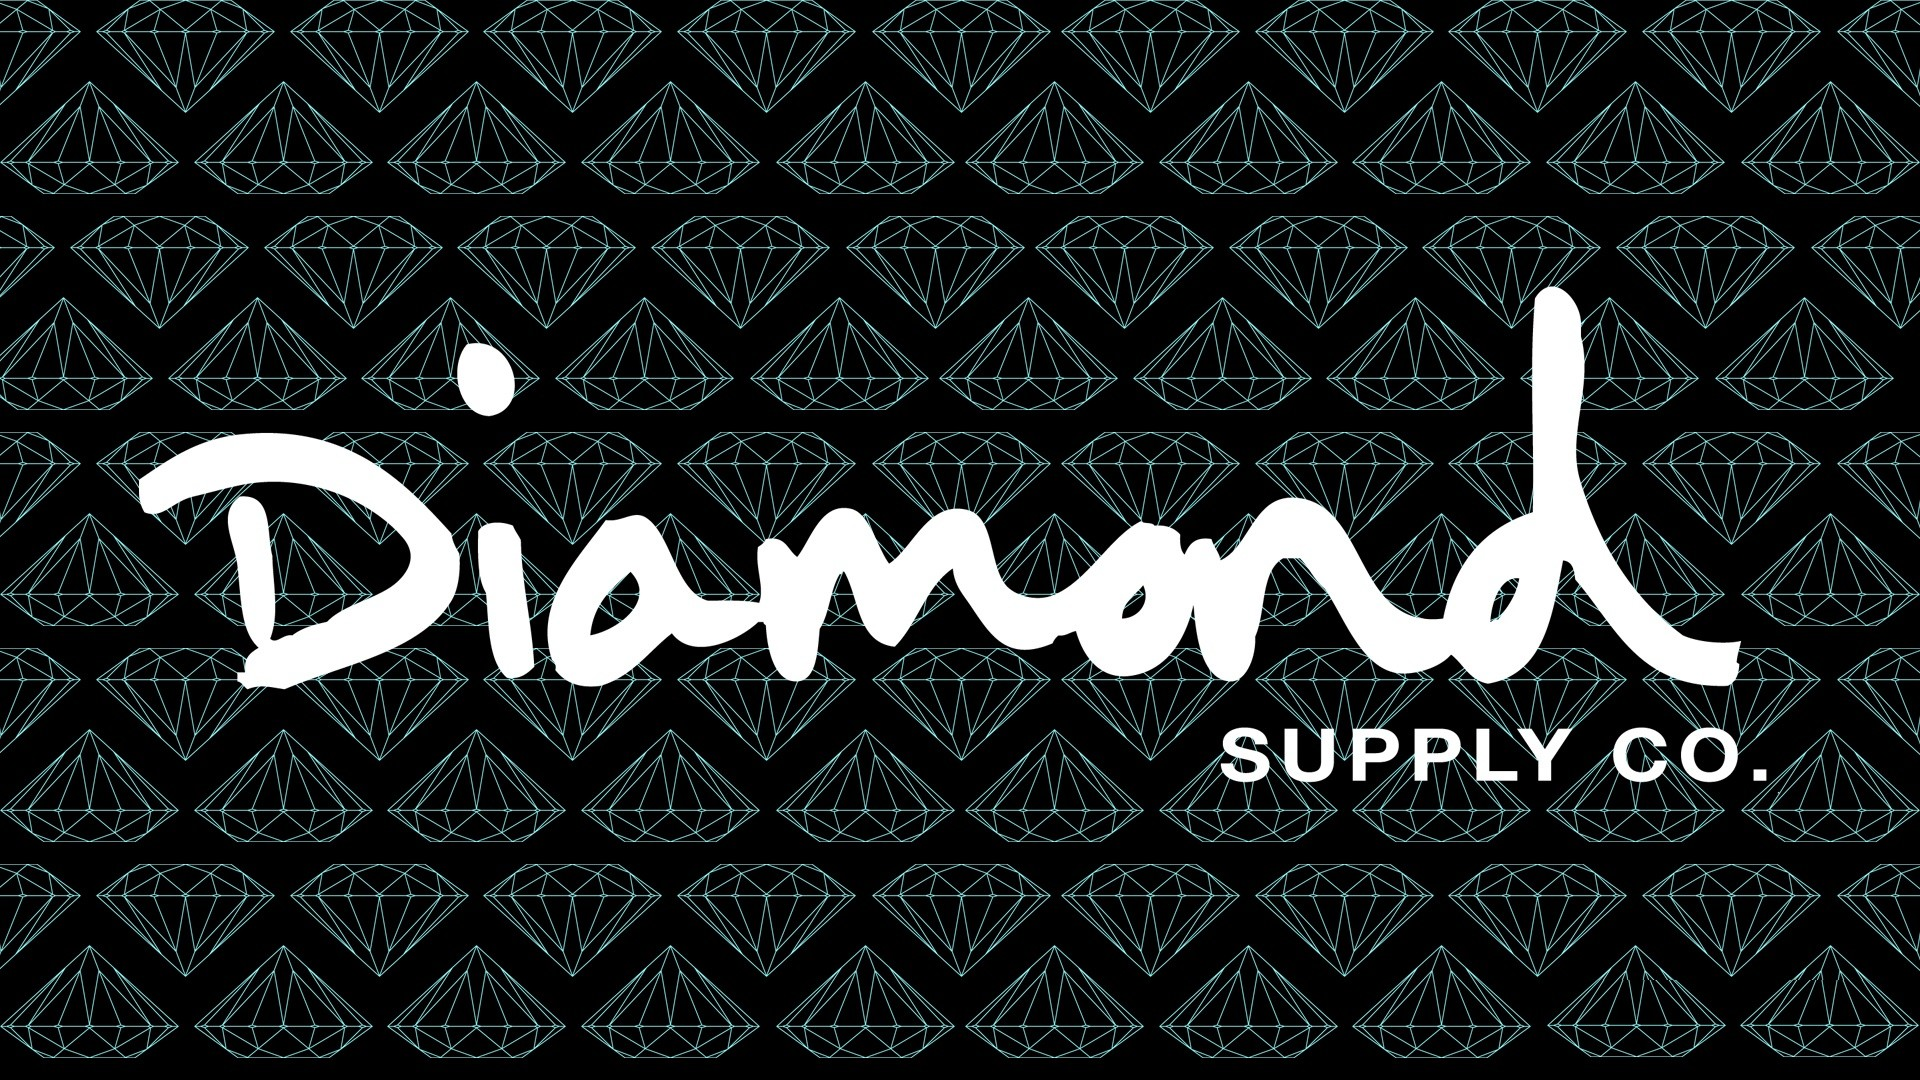 free diamond supply co iphone background photos windows amazing artworks 4k  high definition best wallpaper ever